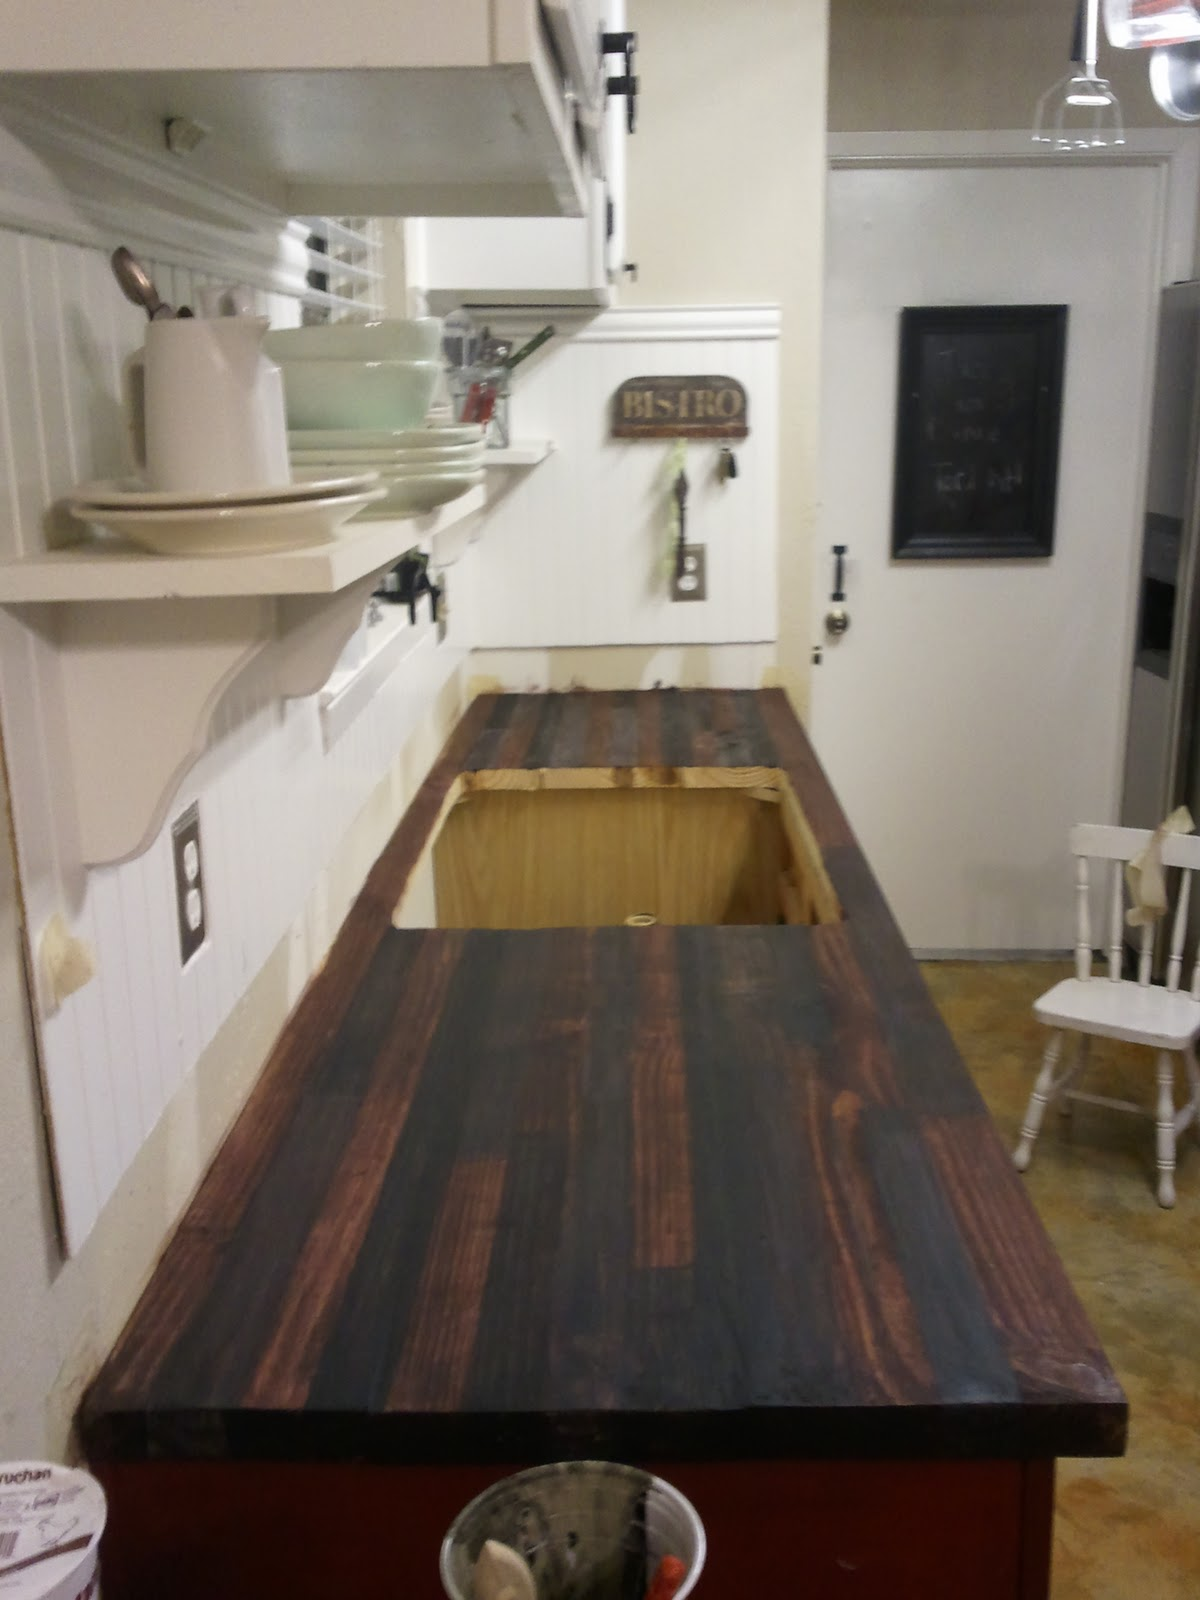 Brush with Stain Gel - How to Make a Butcher Block Countertop